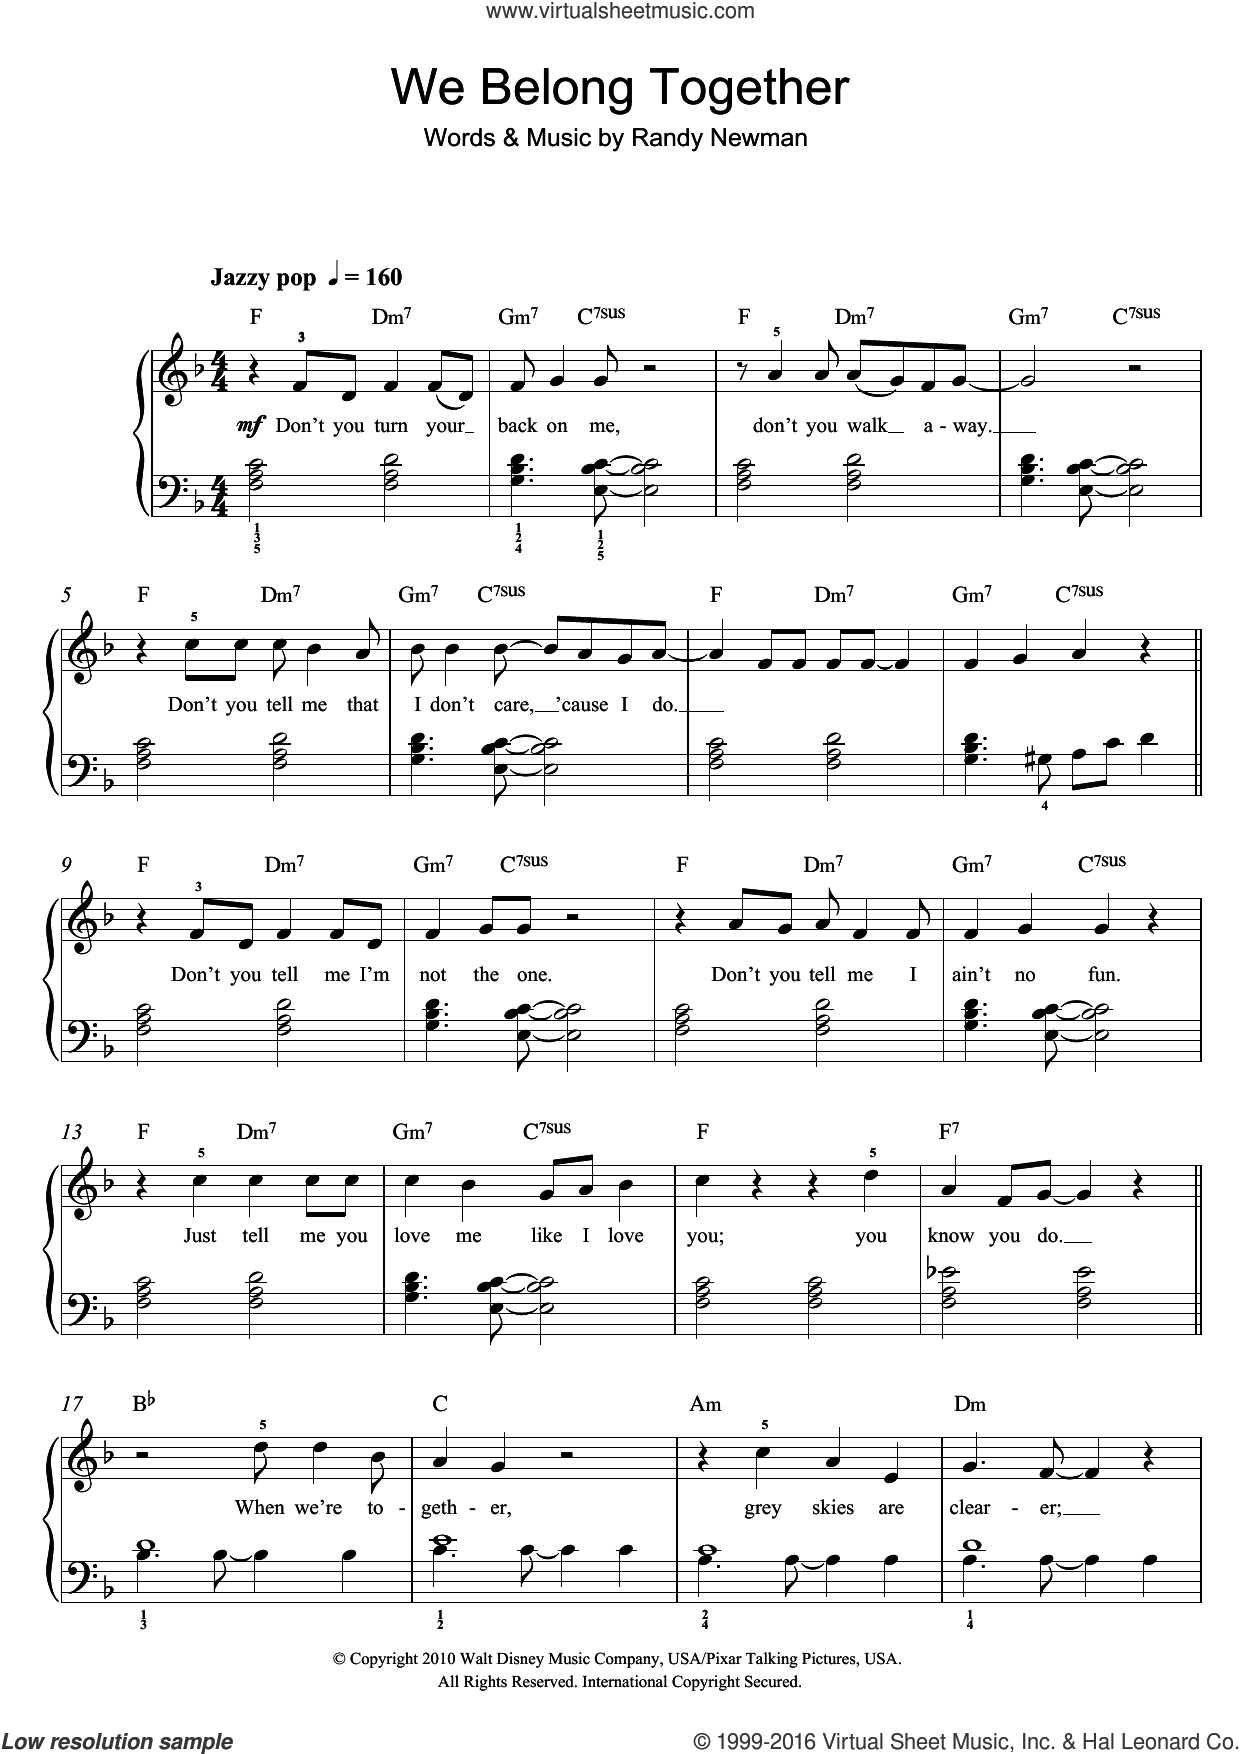 We Belong Together (From Disney's Toy Story 3) sheet music for voice, piano or guitar by Randy Newman. Score Image Preview.